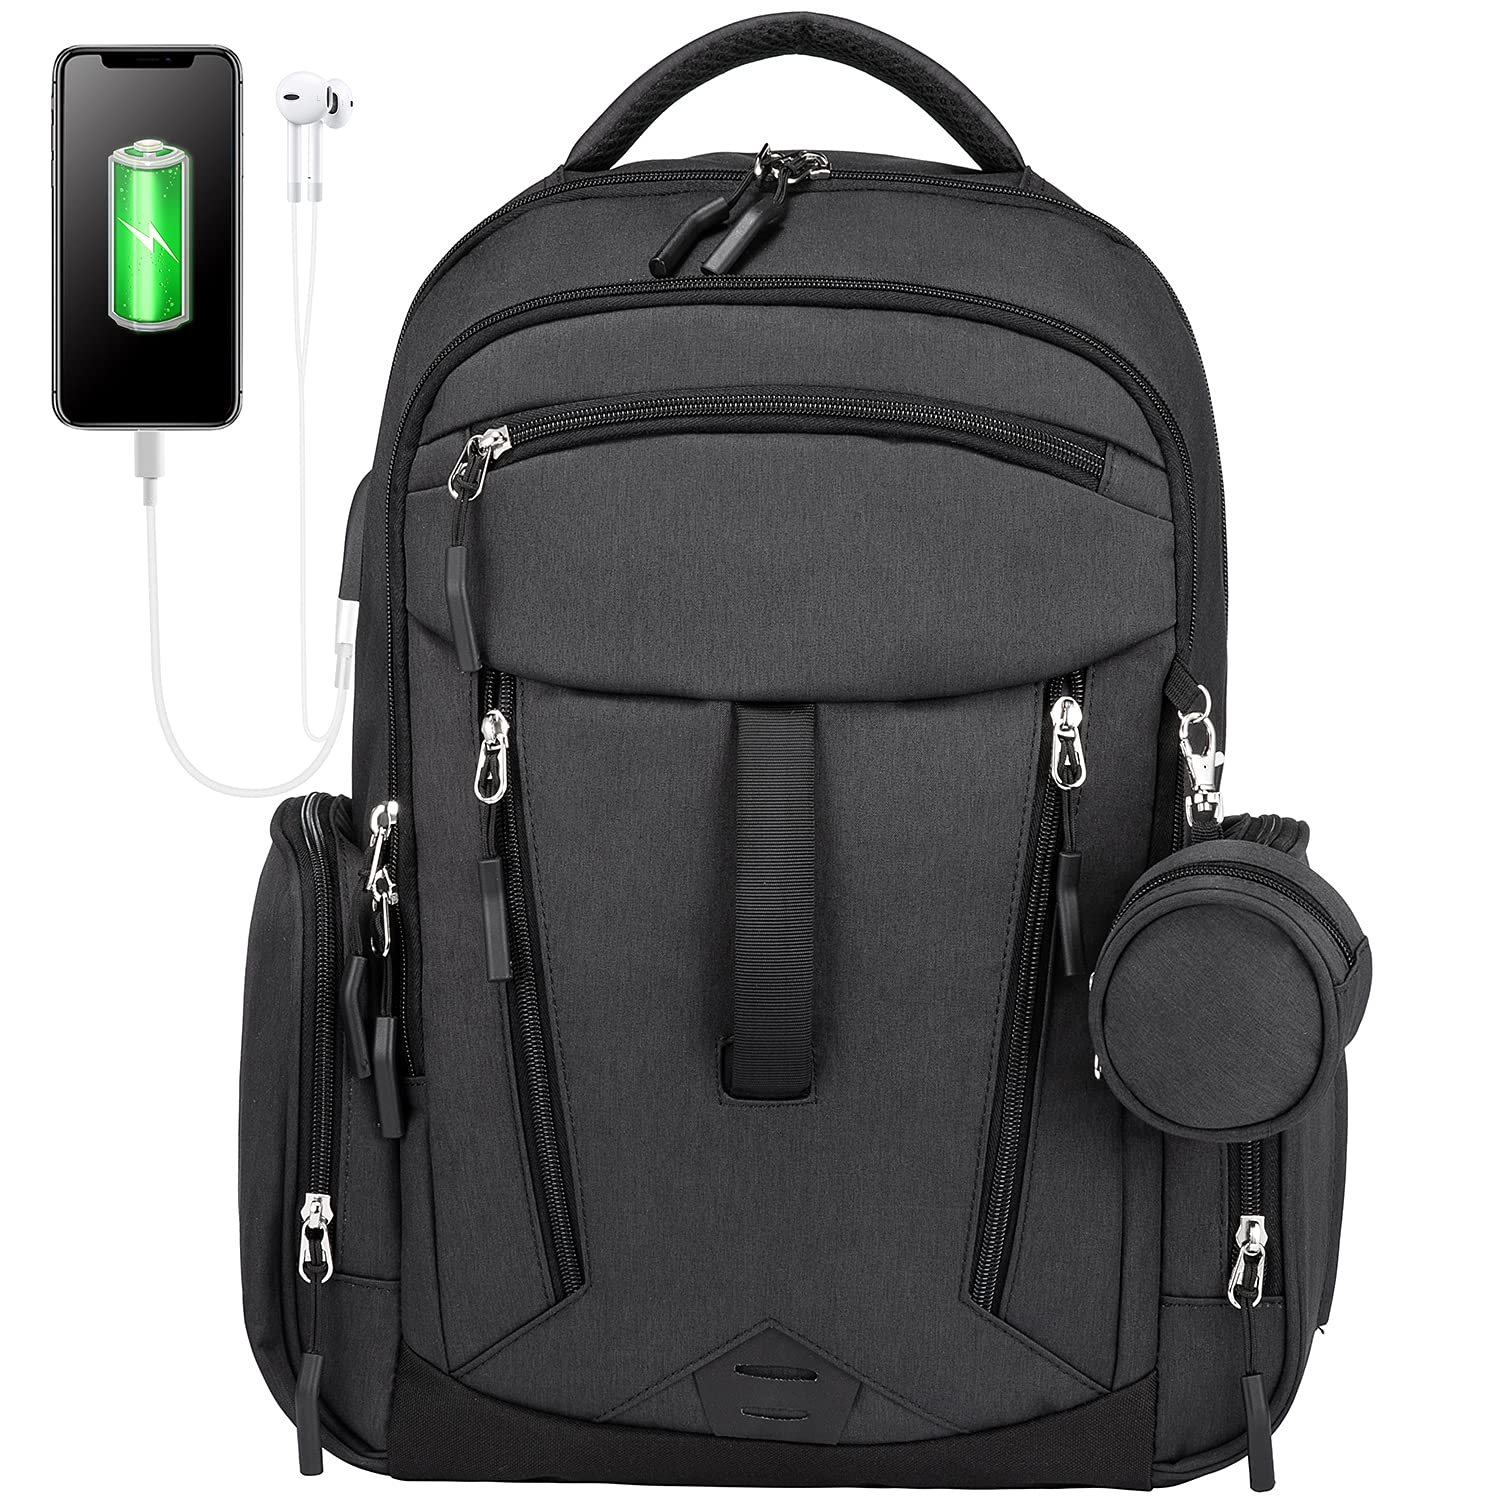 Diaper Bag Backpack, LOVEVOOK Multipurpose Baby Changing Bags Unisex Travel Back Pack, Equipped with USB Charging Port & Pacifier Box(Black)